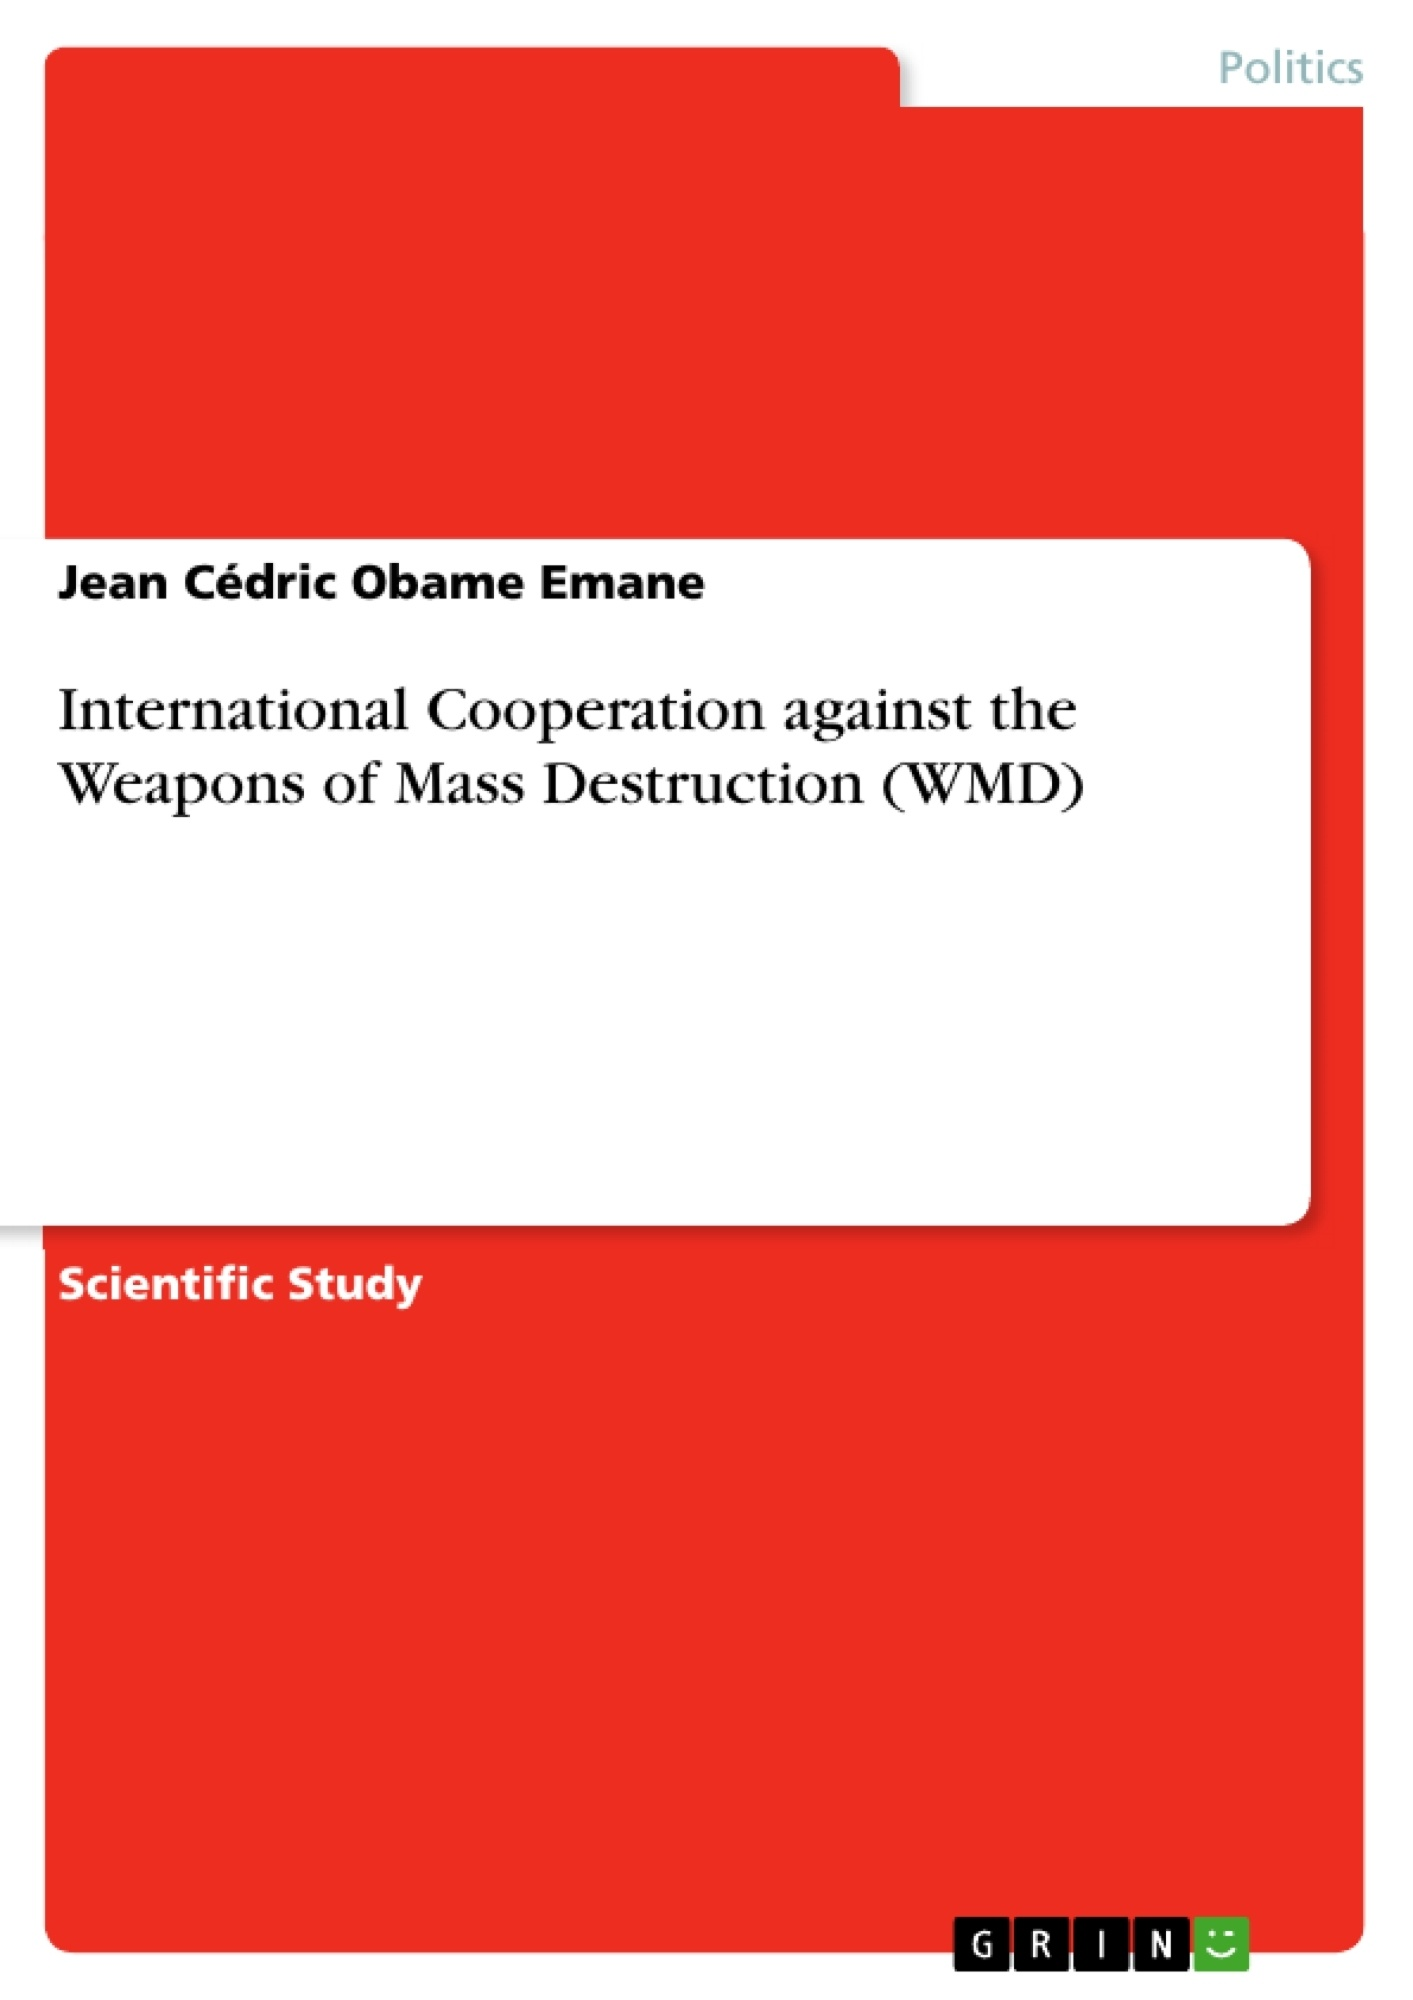 Title: International Cooperation against the Weapons of Mass Destruction (WMD)